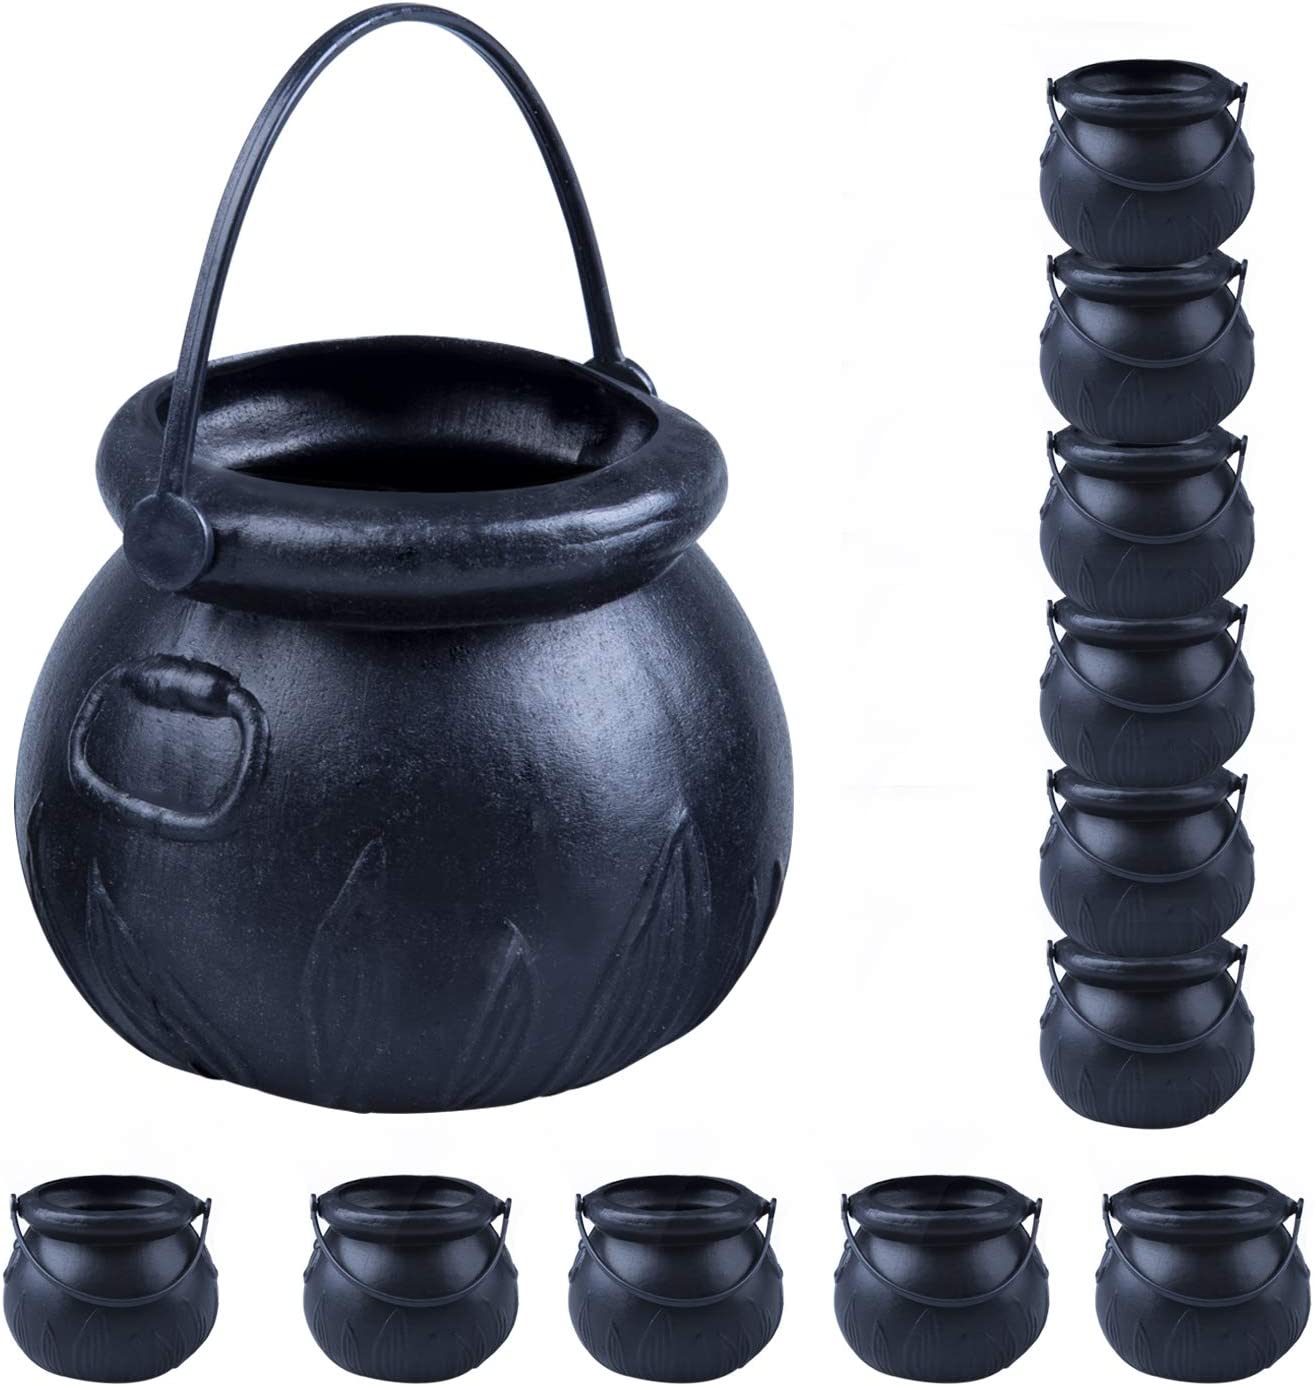 YUNGCHI Plastic Mini Cauldron, Black Witch Cauldron, Witches Cauldron Candy Holder Pot With Handle For Halloween Party Decorations Supplies,Set of 12